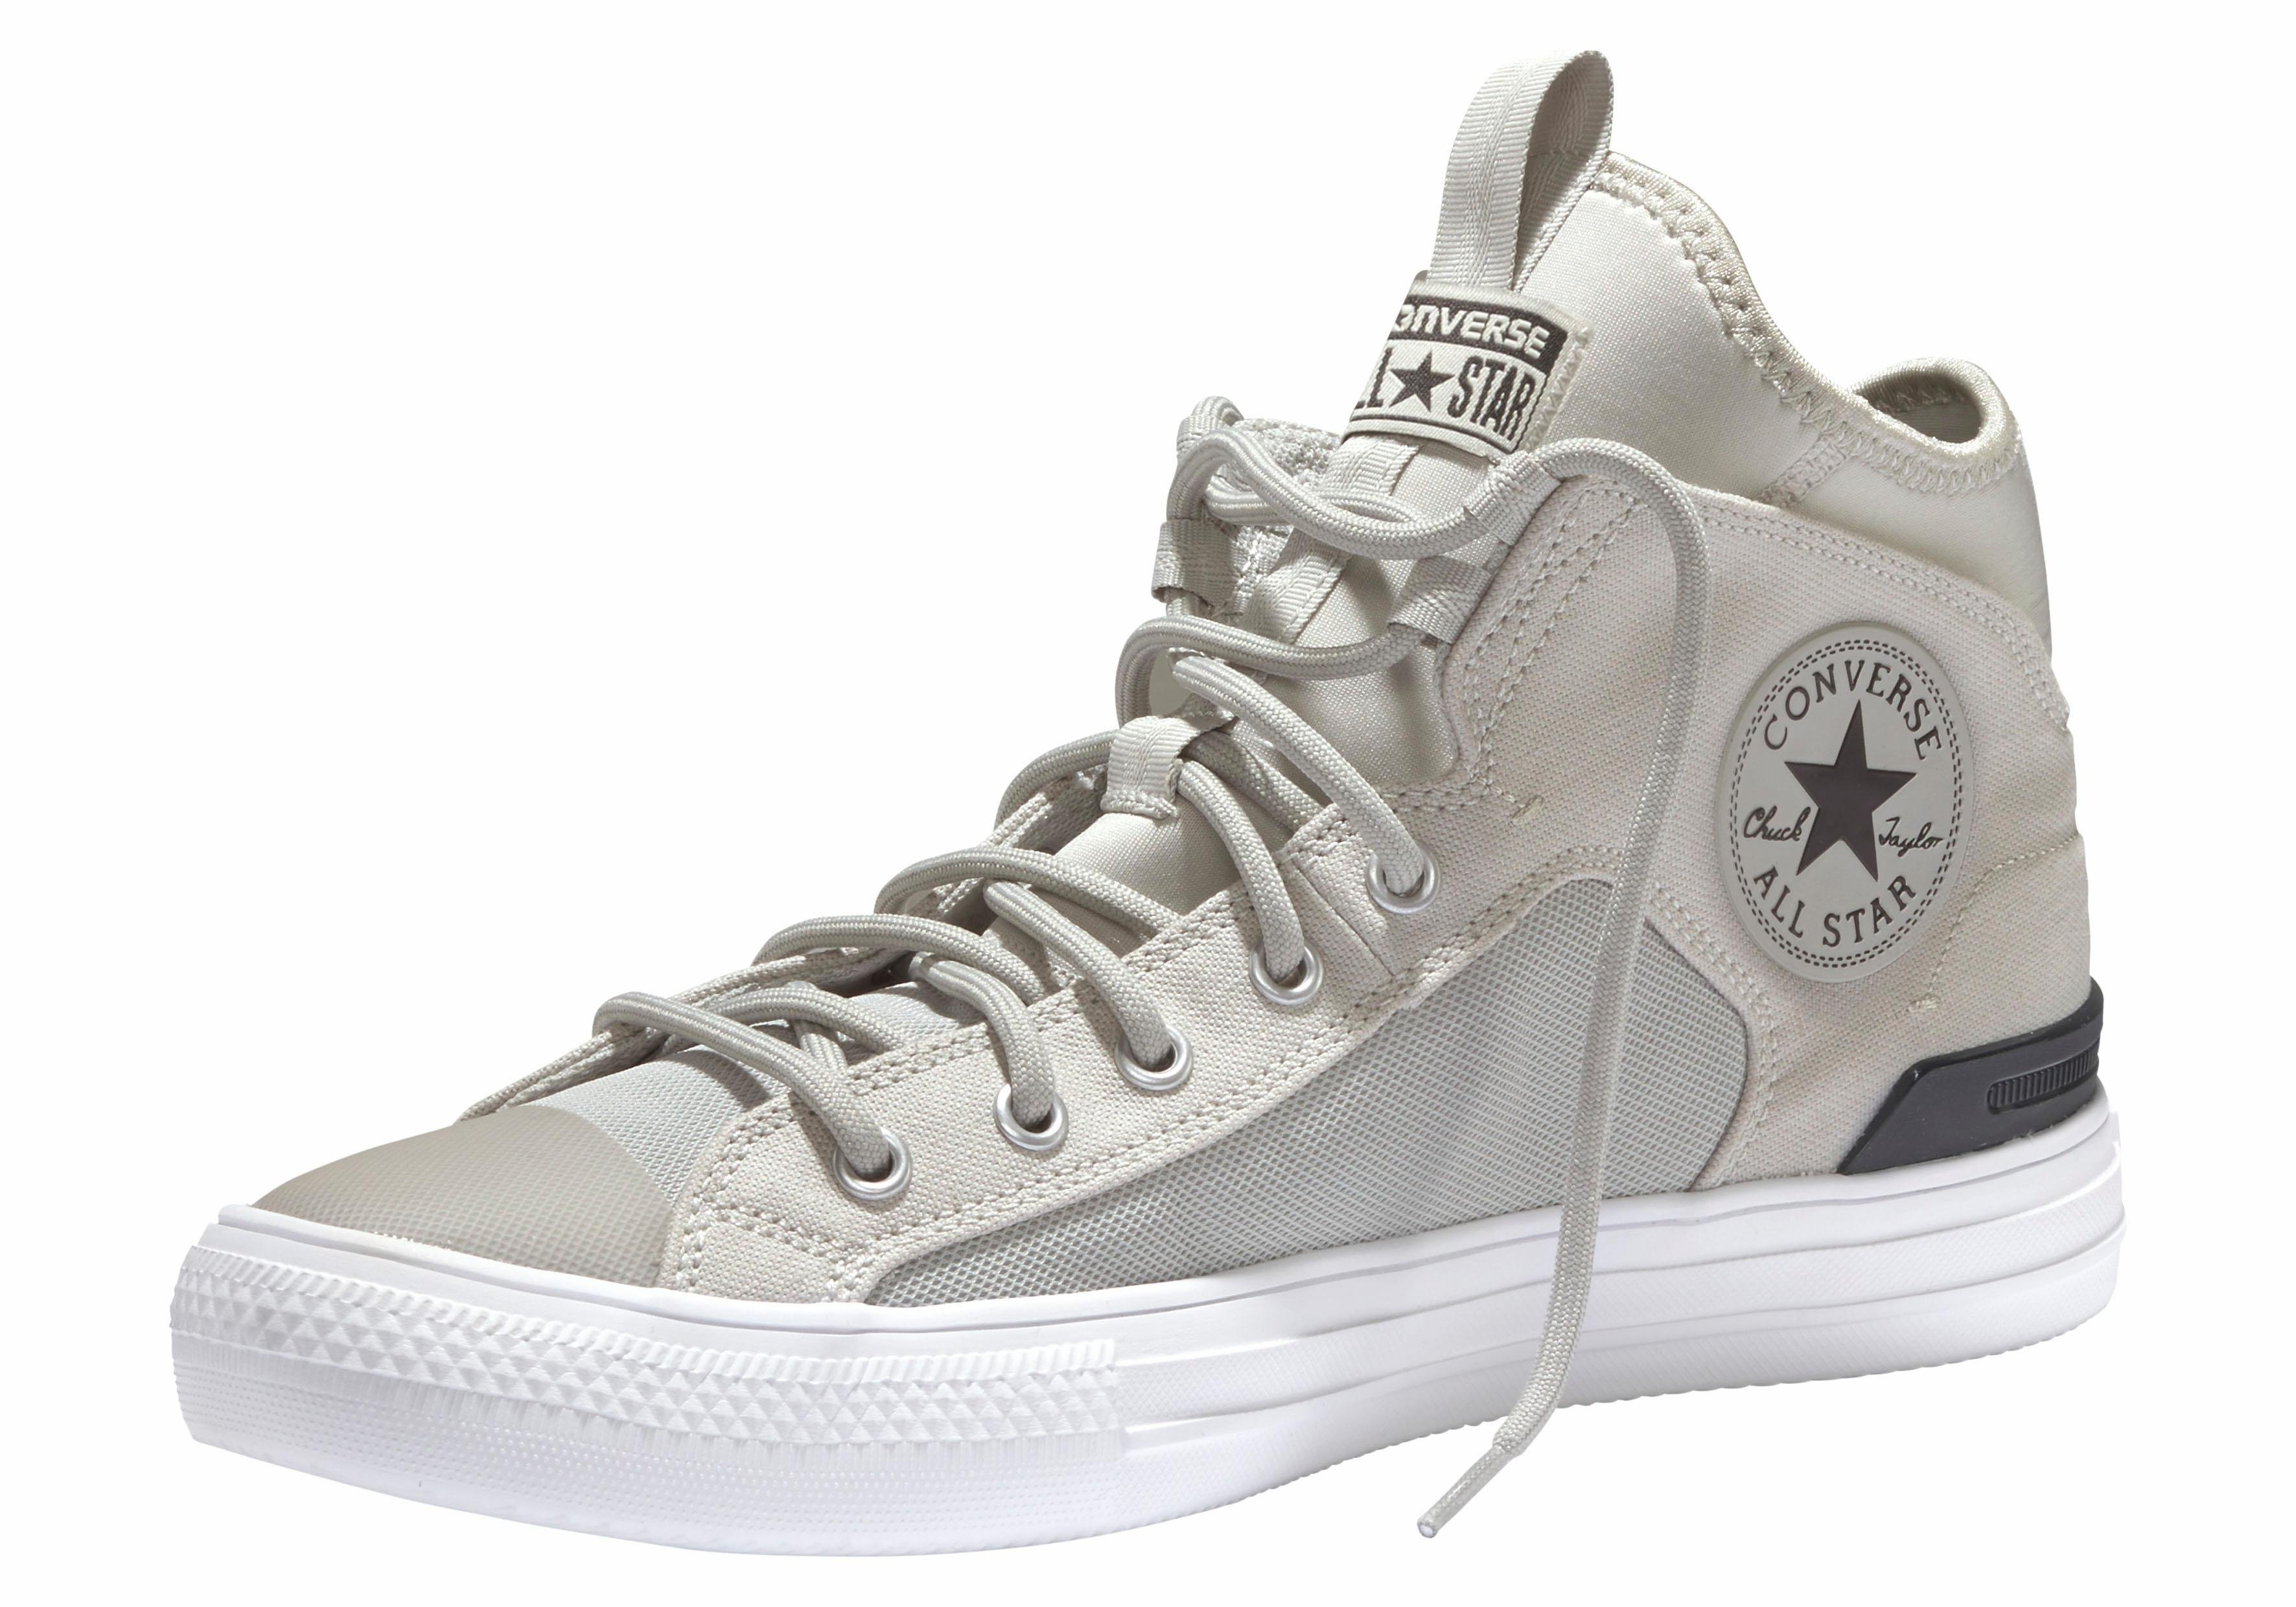 e5466d9108e301 ... order online 122f5 6f6f8 Afbeeldingsbron Converse sneakers »Chuck  Taylor All Star Ultra Mid Male« ...